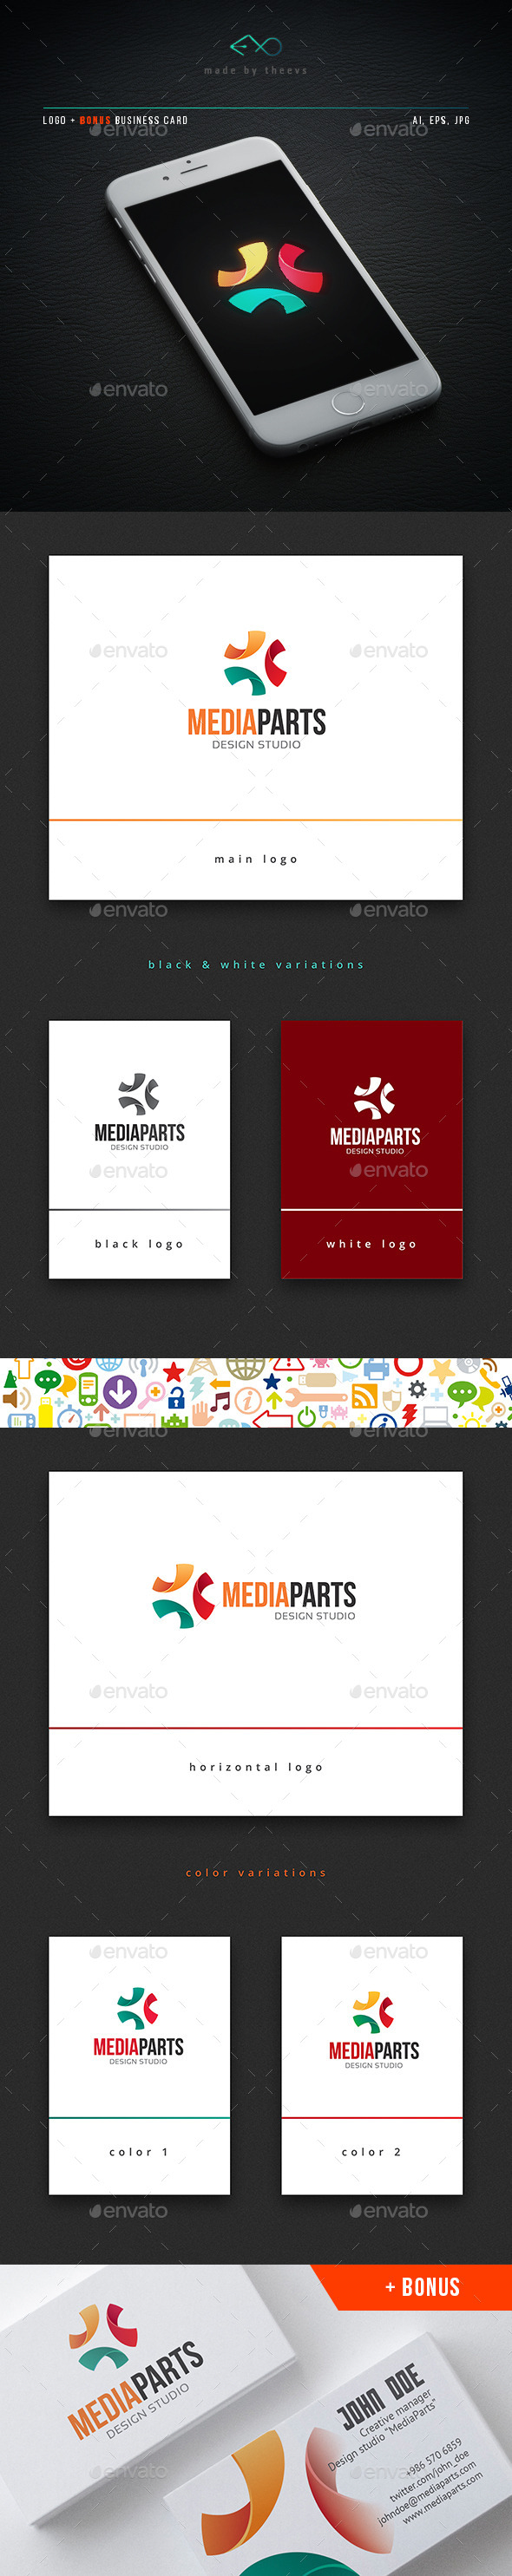 MediaParts - Vector Abstract